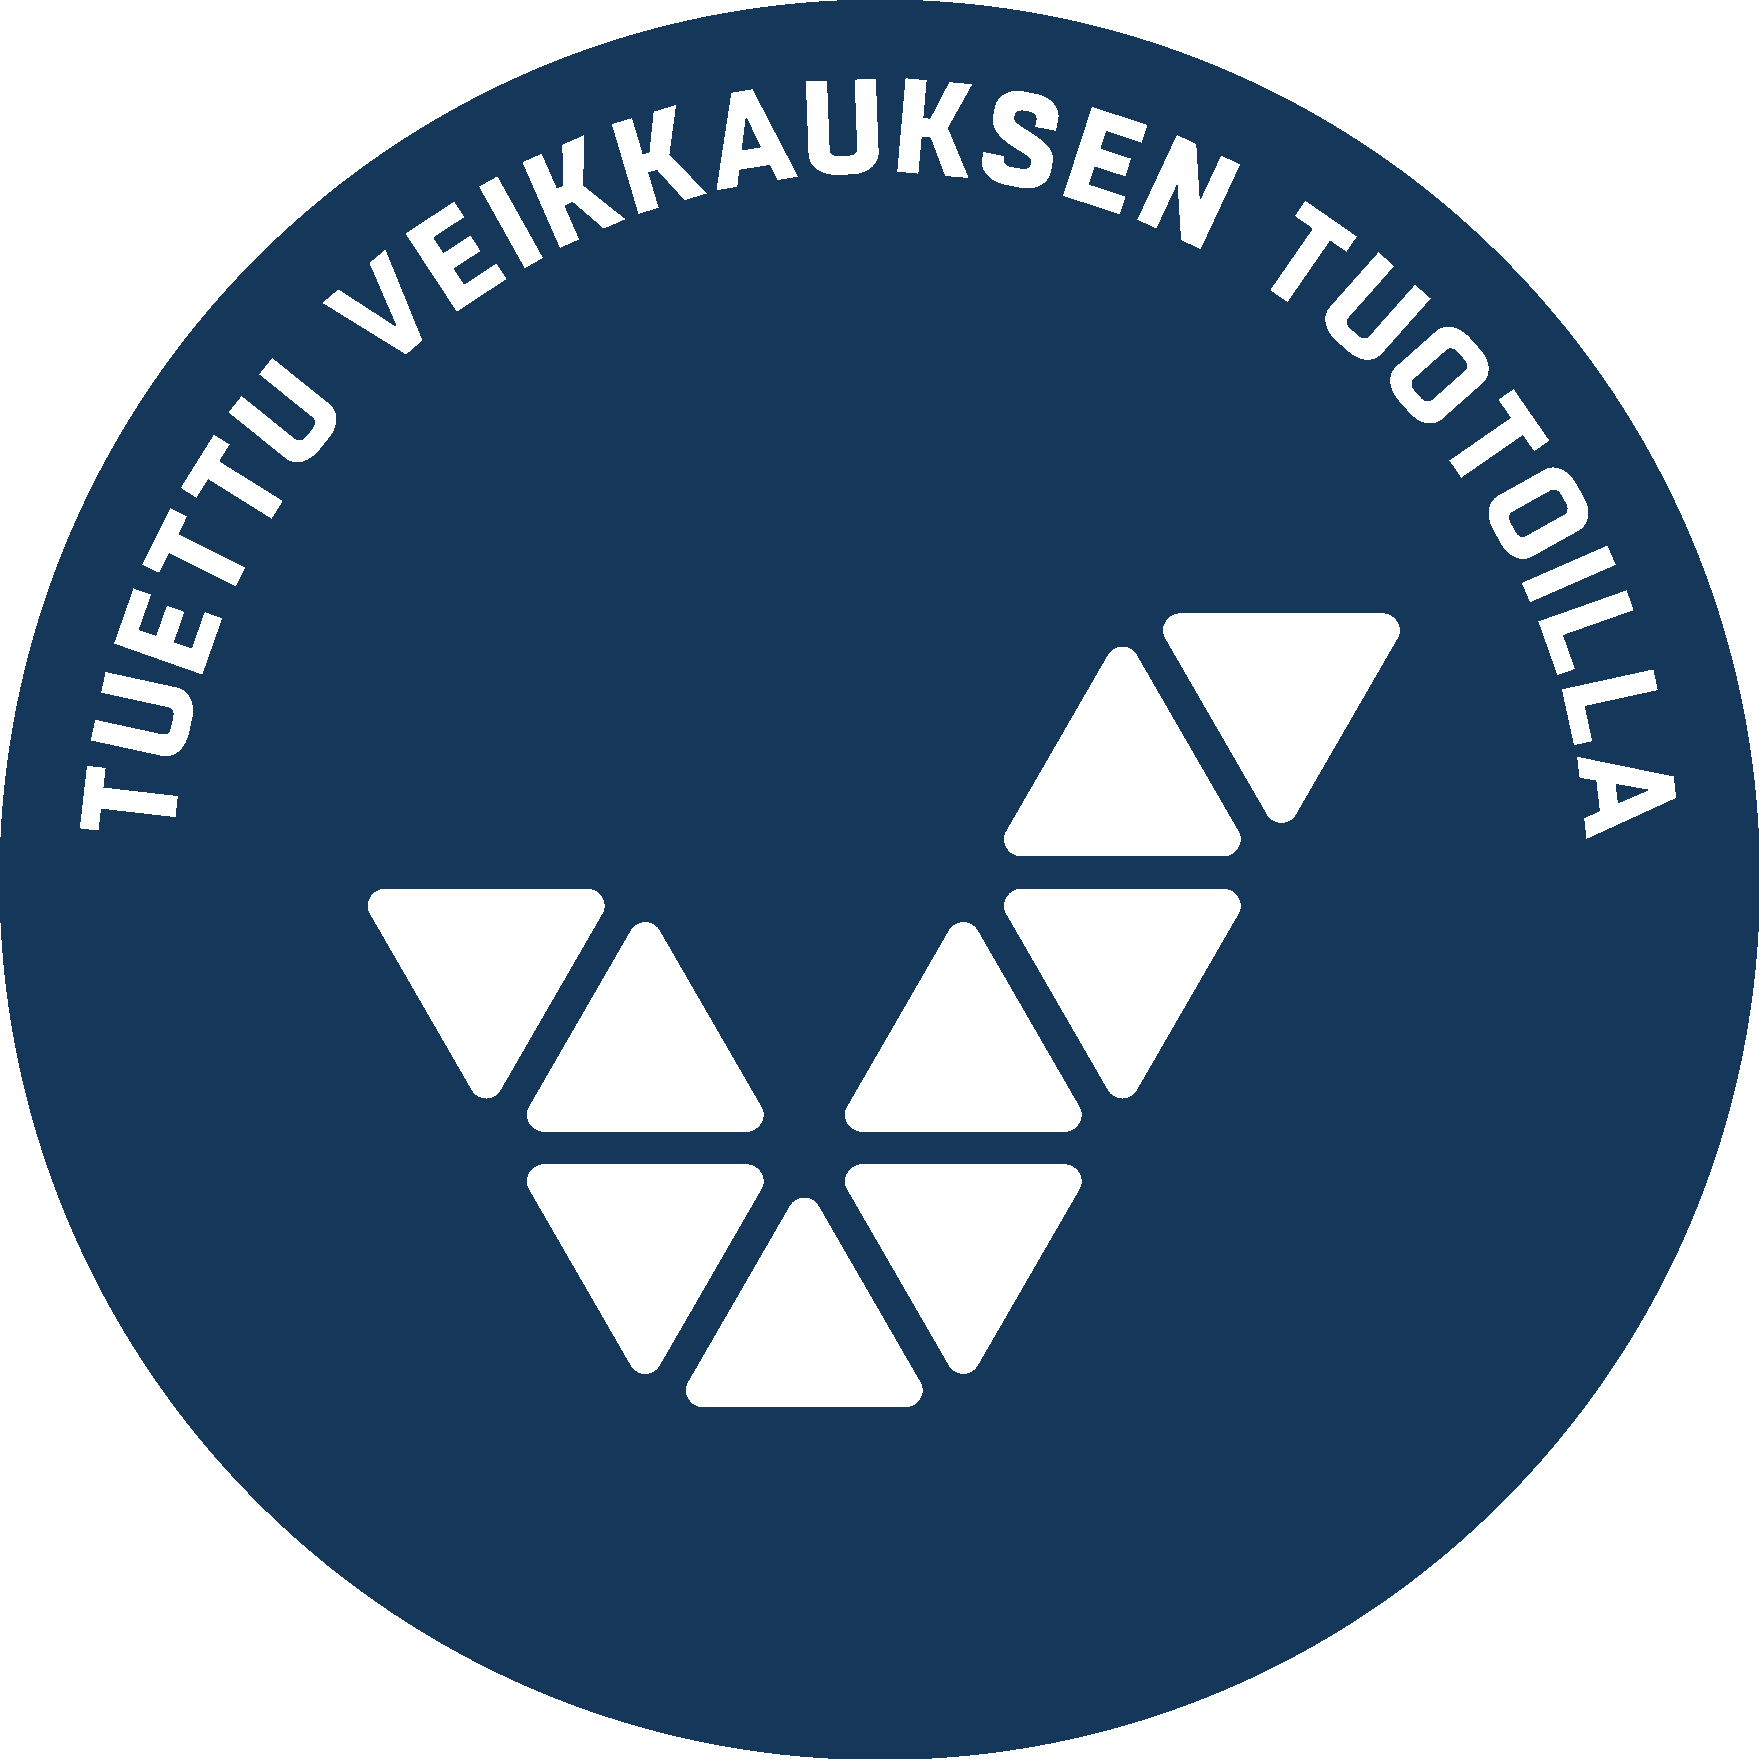 Veikkauksen logo